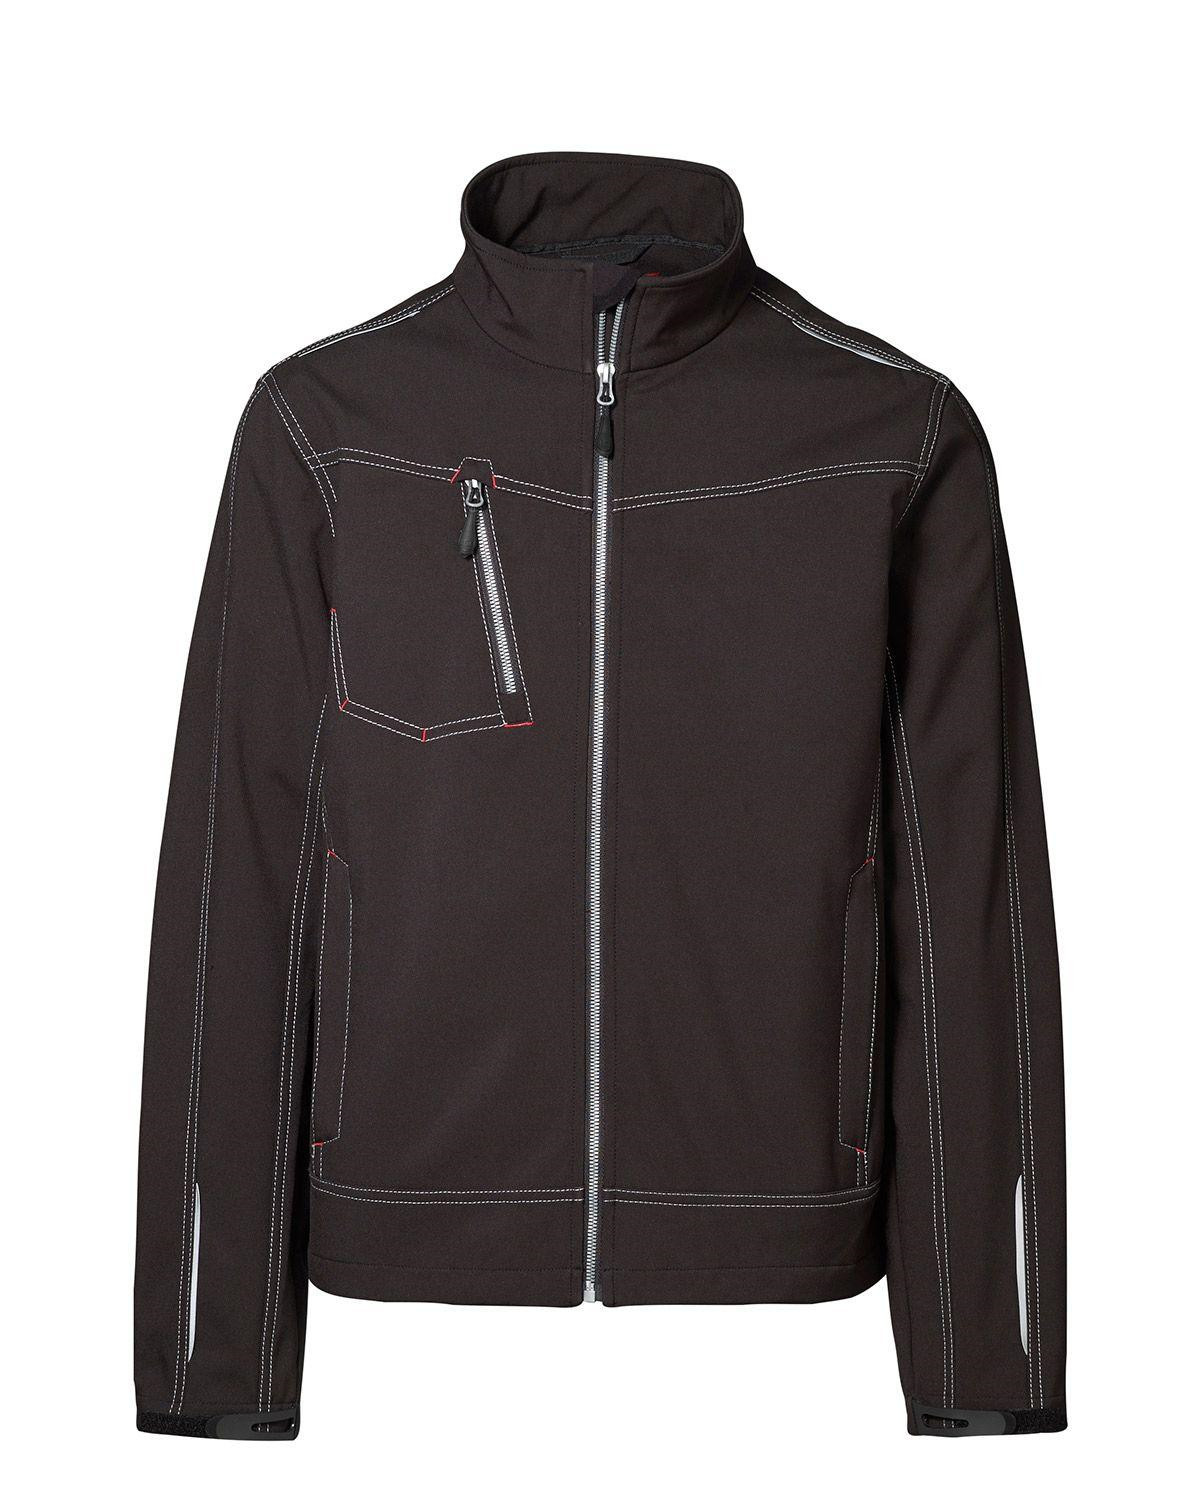 Image of   ID Softshell Jakke (Sort, 2XL)